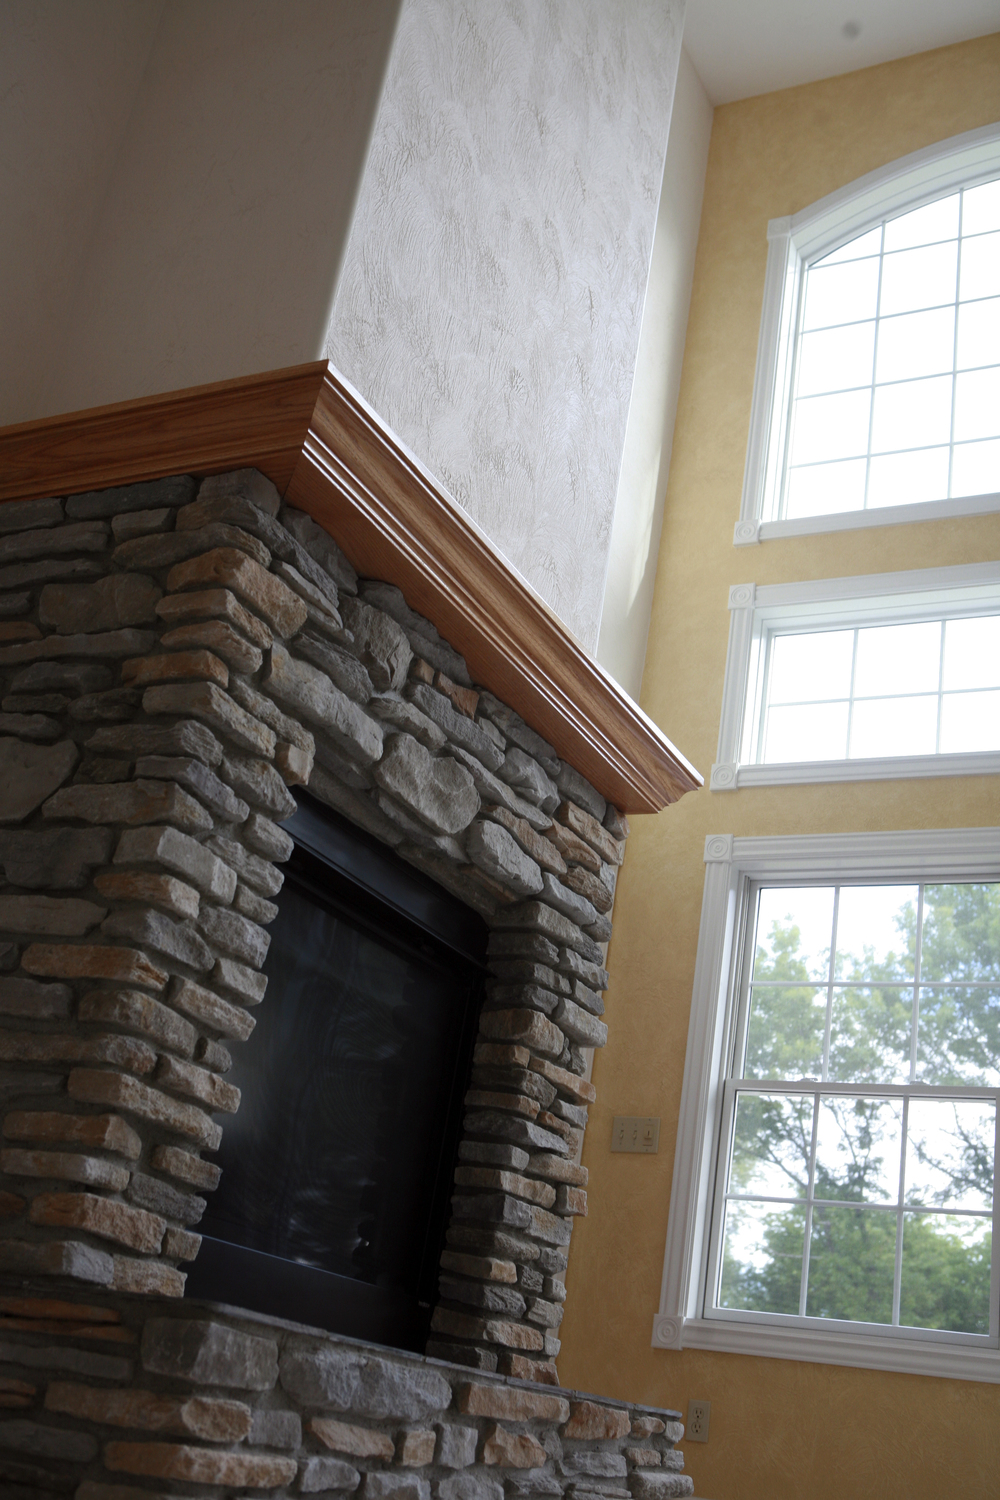 Lot 5 Fireplace 3.jpg